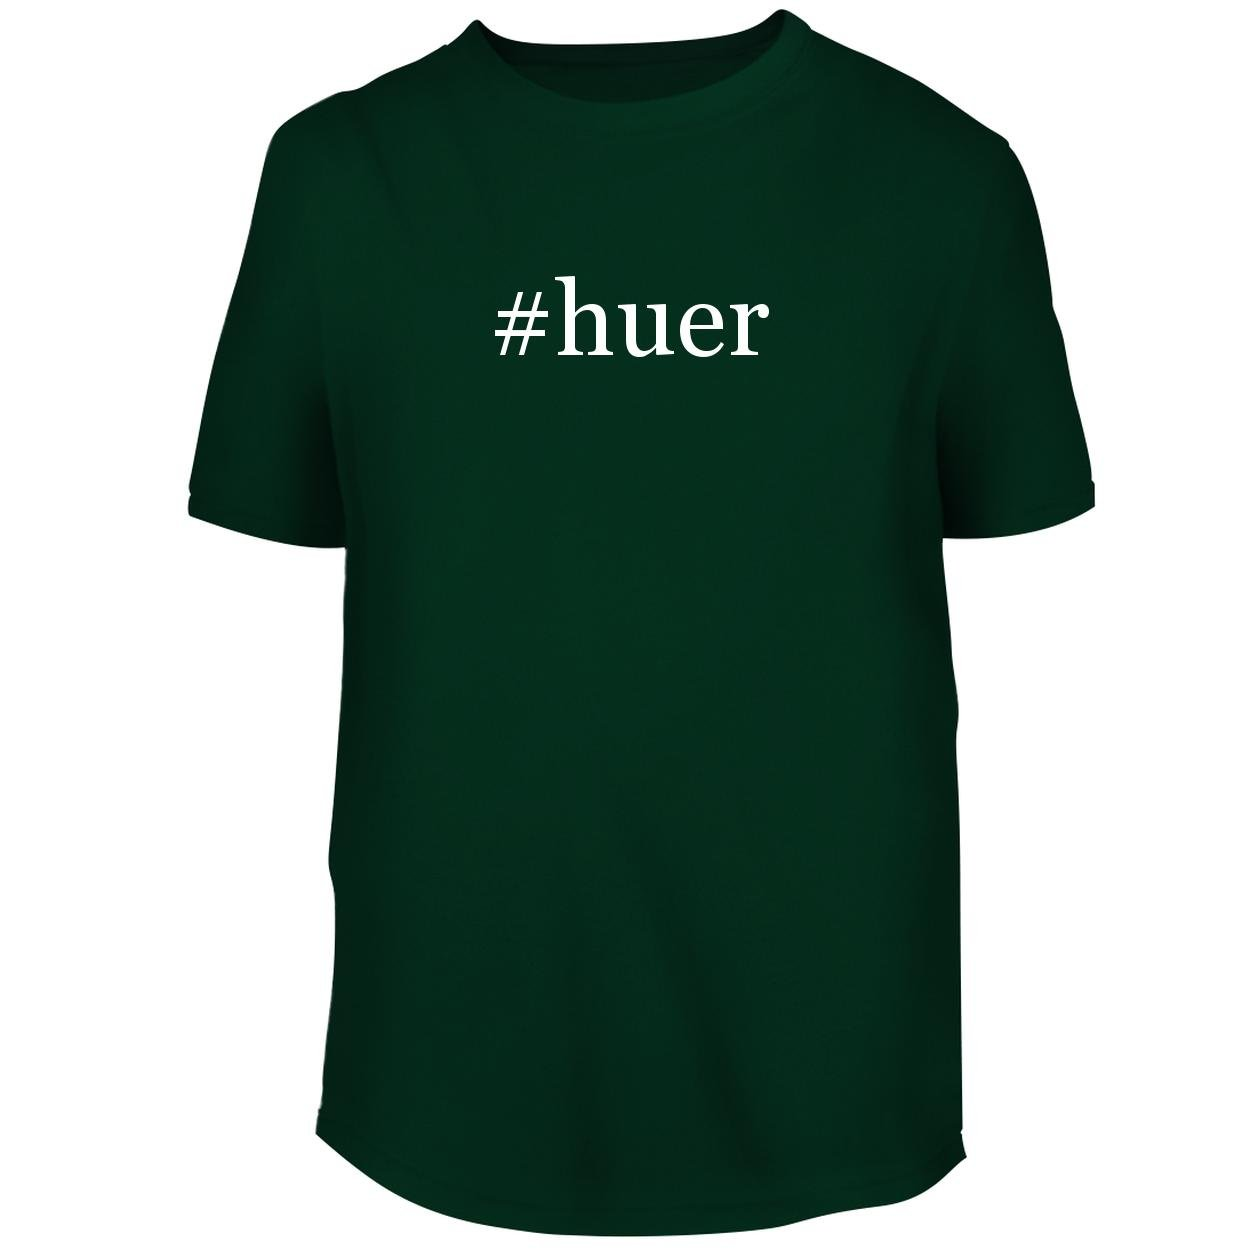 BH Cool Designs #Huer - Men's Graphic Tee, Forest, Large by BH Cool Designs